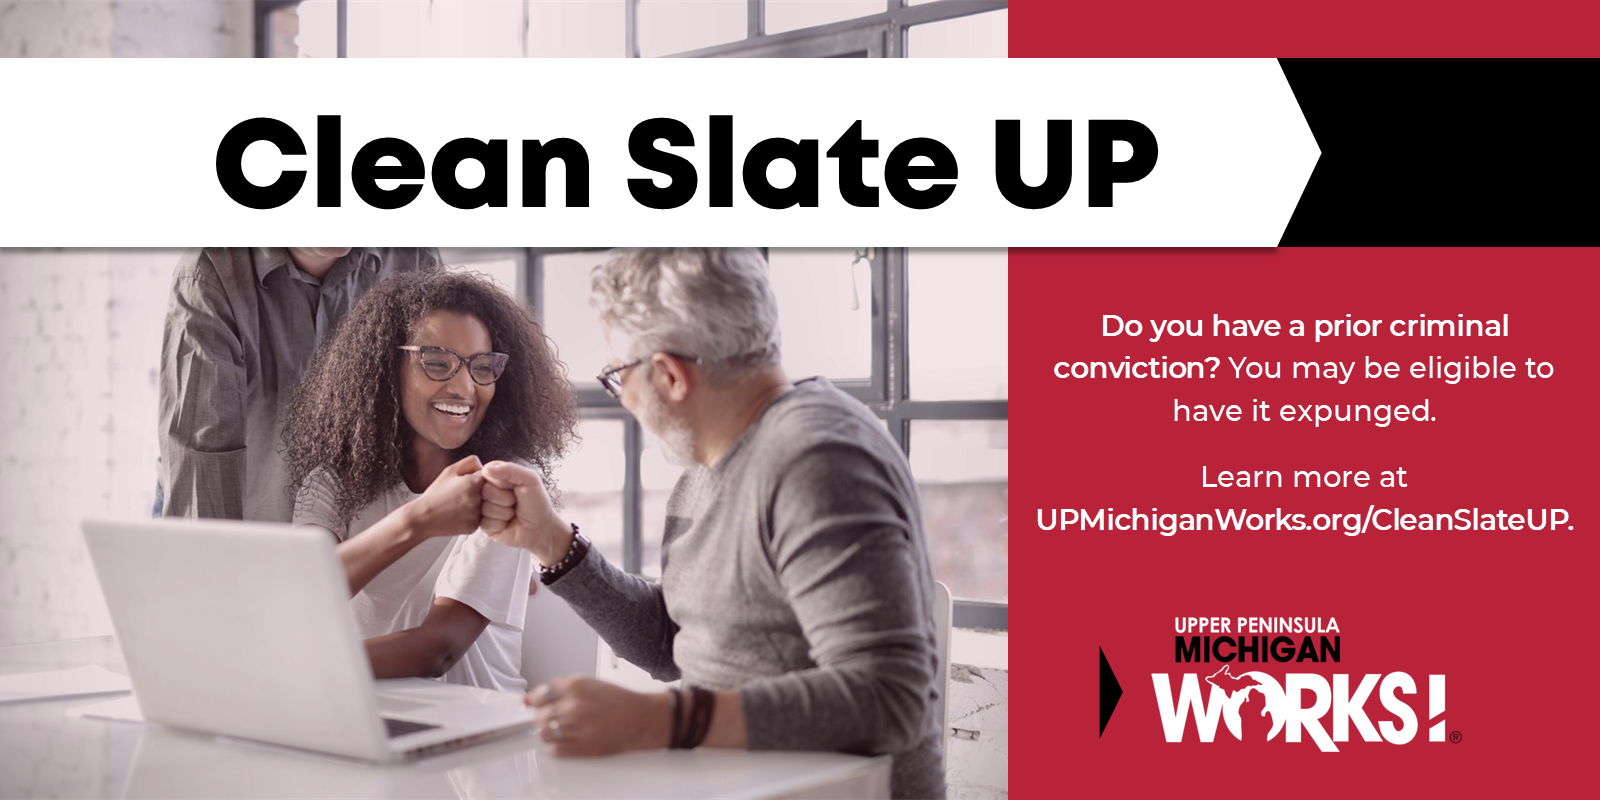 A social graphic for the Clean Slate UP program that has a man and woman bumping fists. Lean more at upmichiganworks.org/cleanslateup.